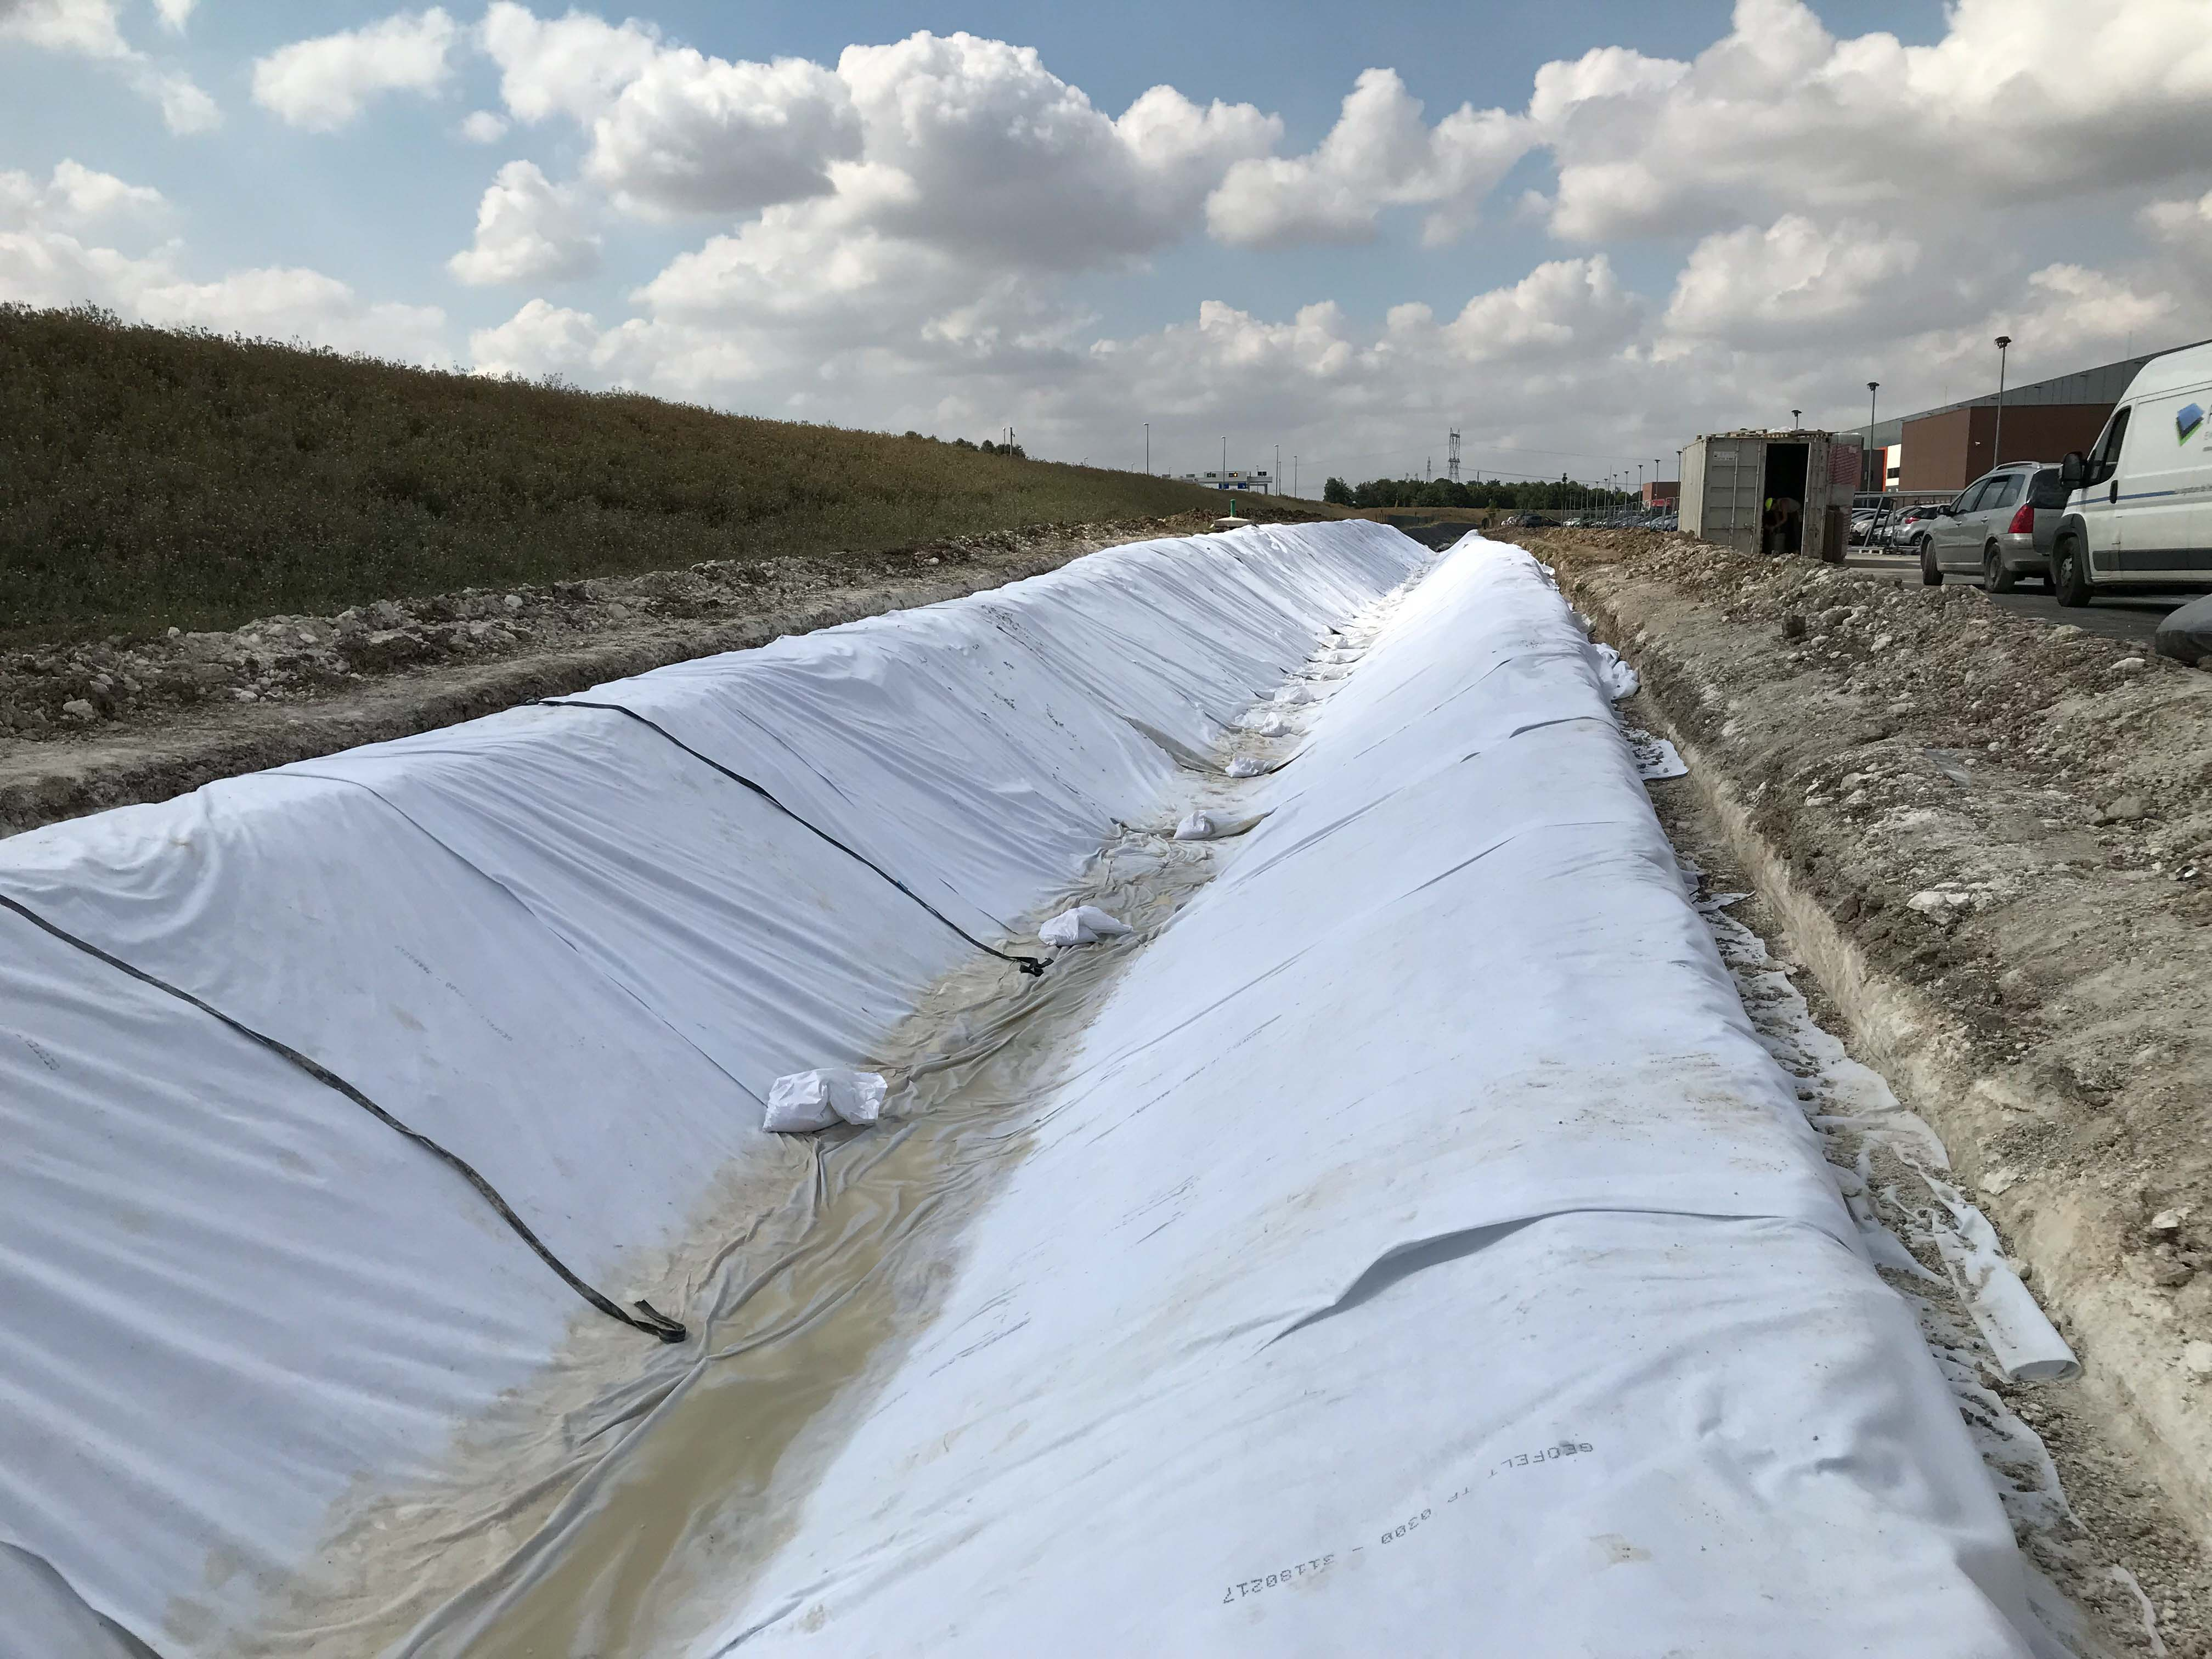 POUPRY NOUE PEHD GEOTEXTILE